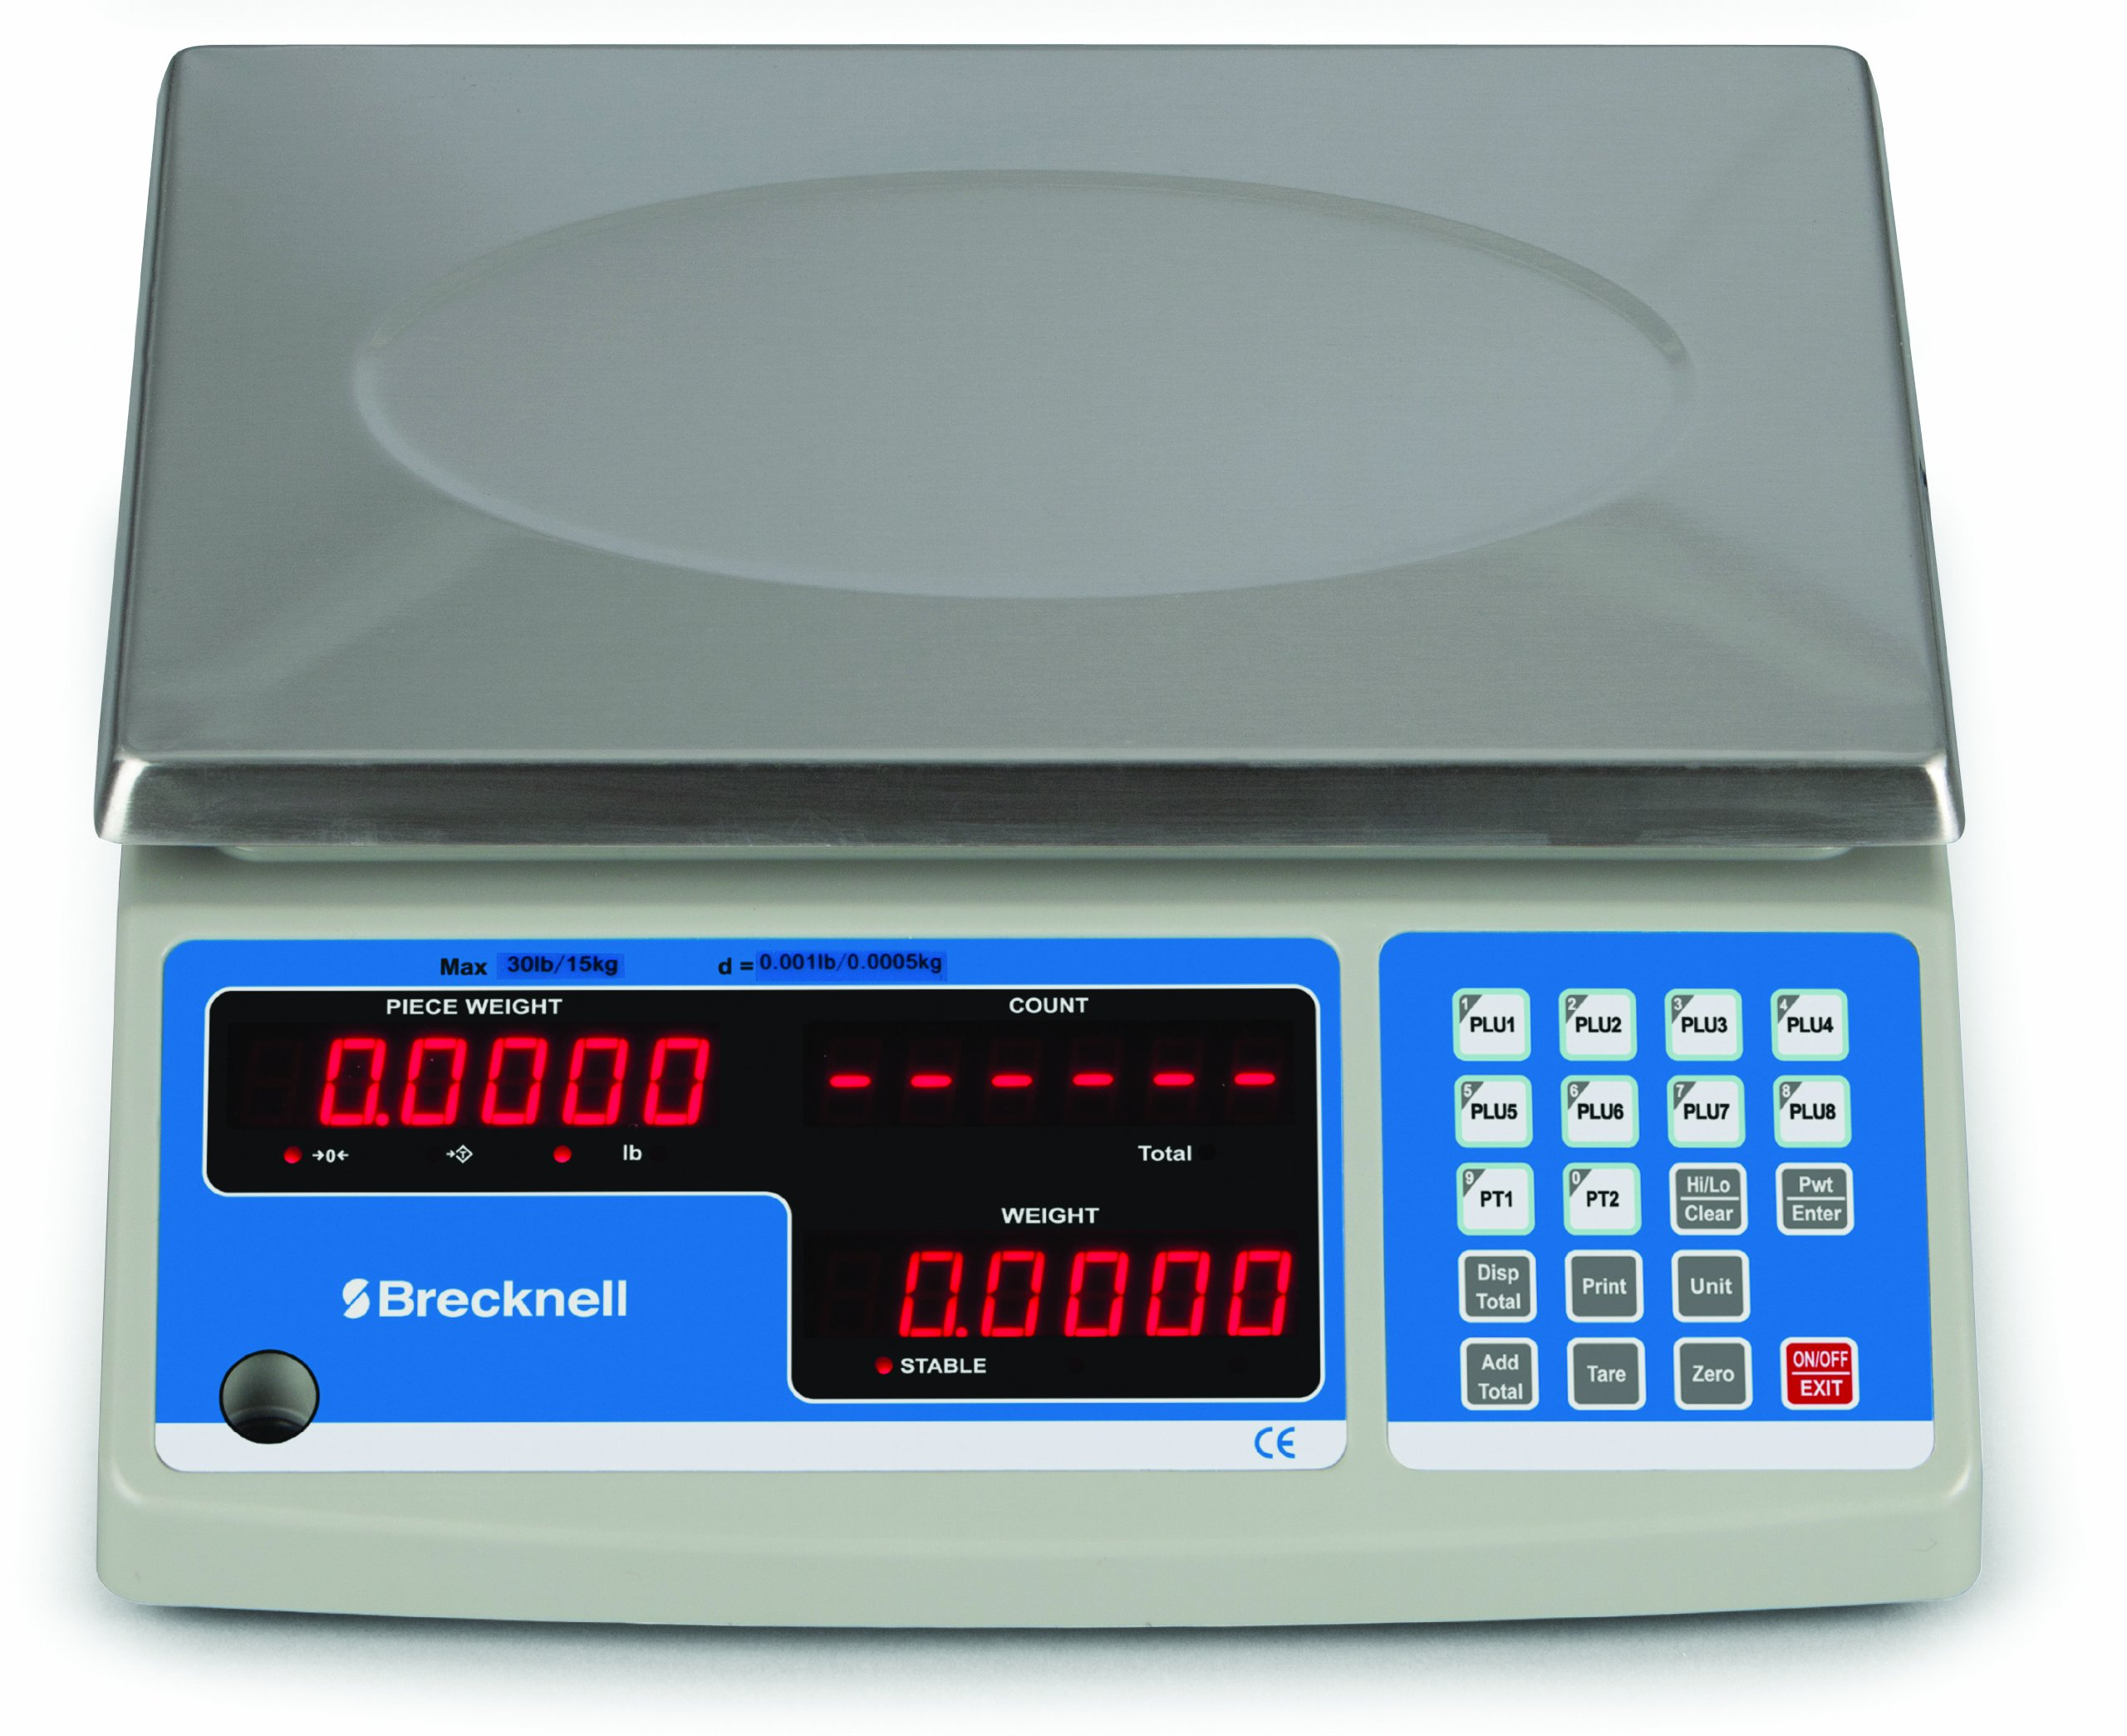 Brecknell B-140 Counting Scale, 6 KG x 0.2 G, 12 LB x 0.005 LB